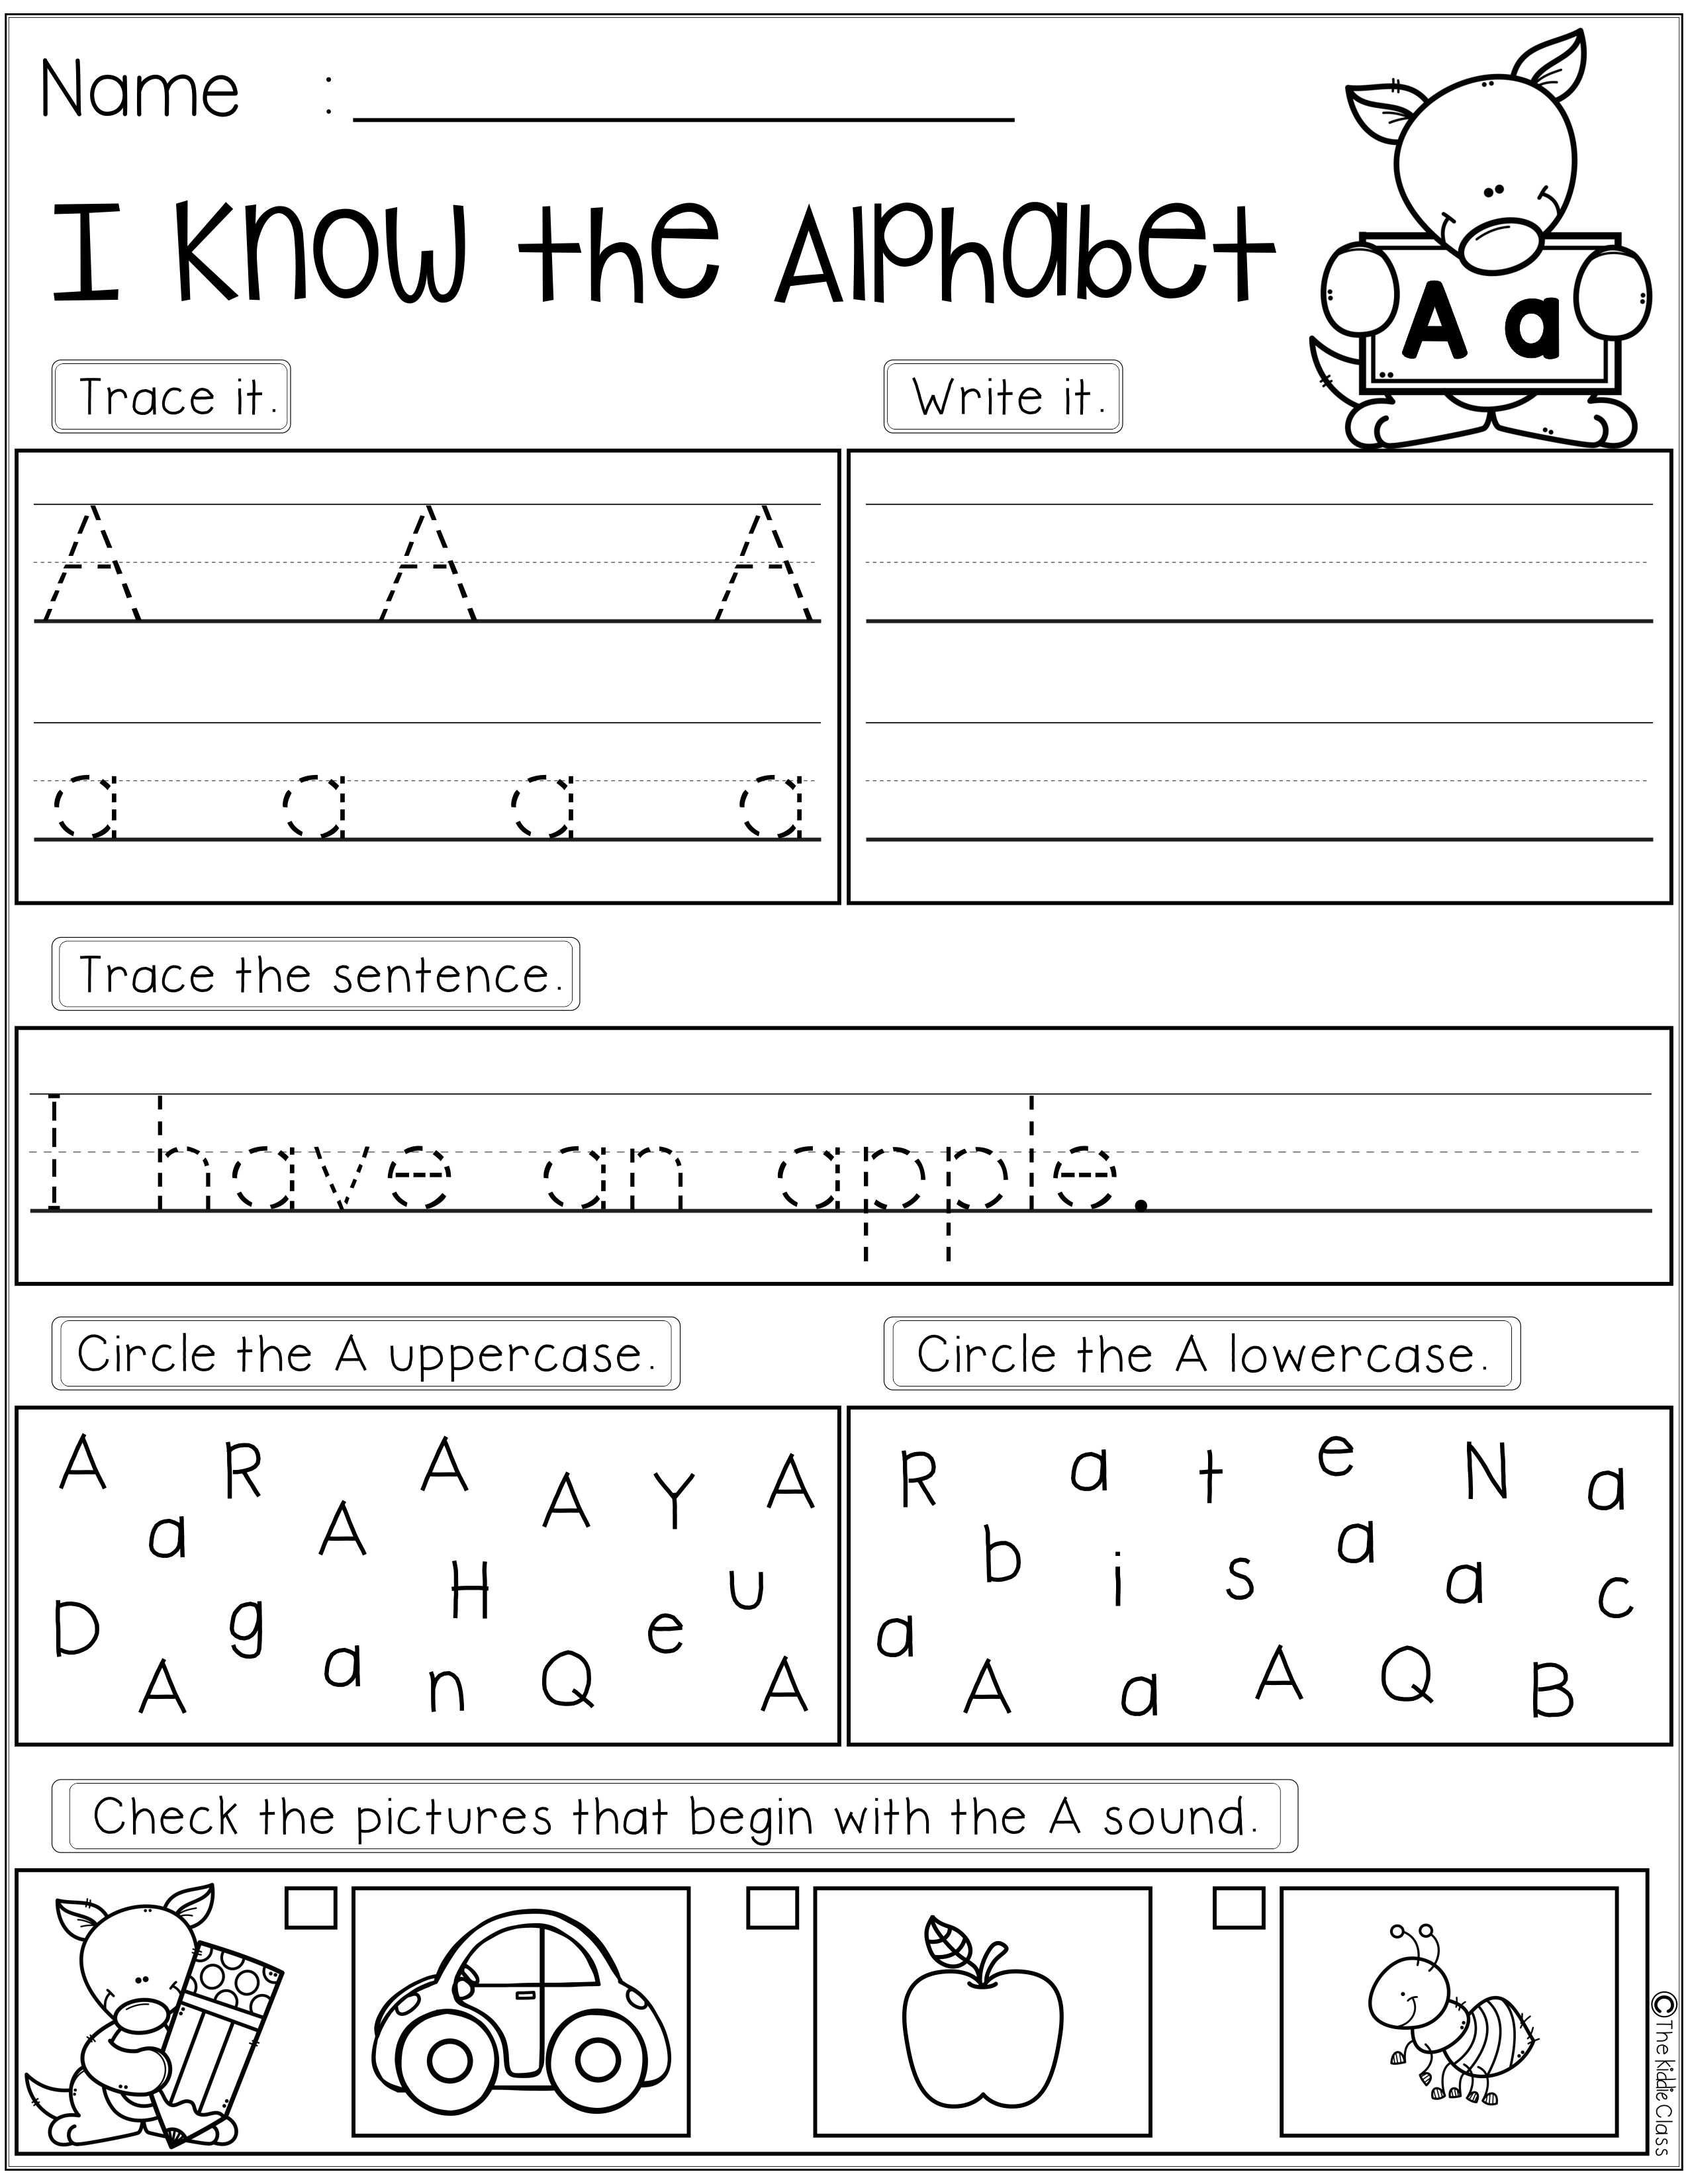 Alphabet Practice Printables Has 26 Pages Of Alphabet Letters Practice In This Packet Students